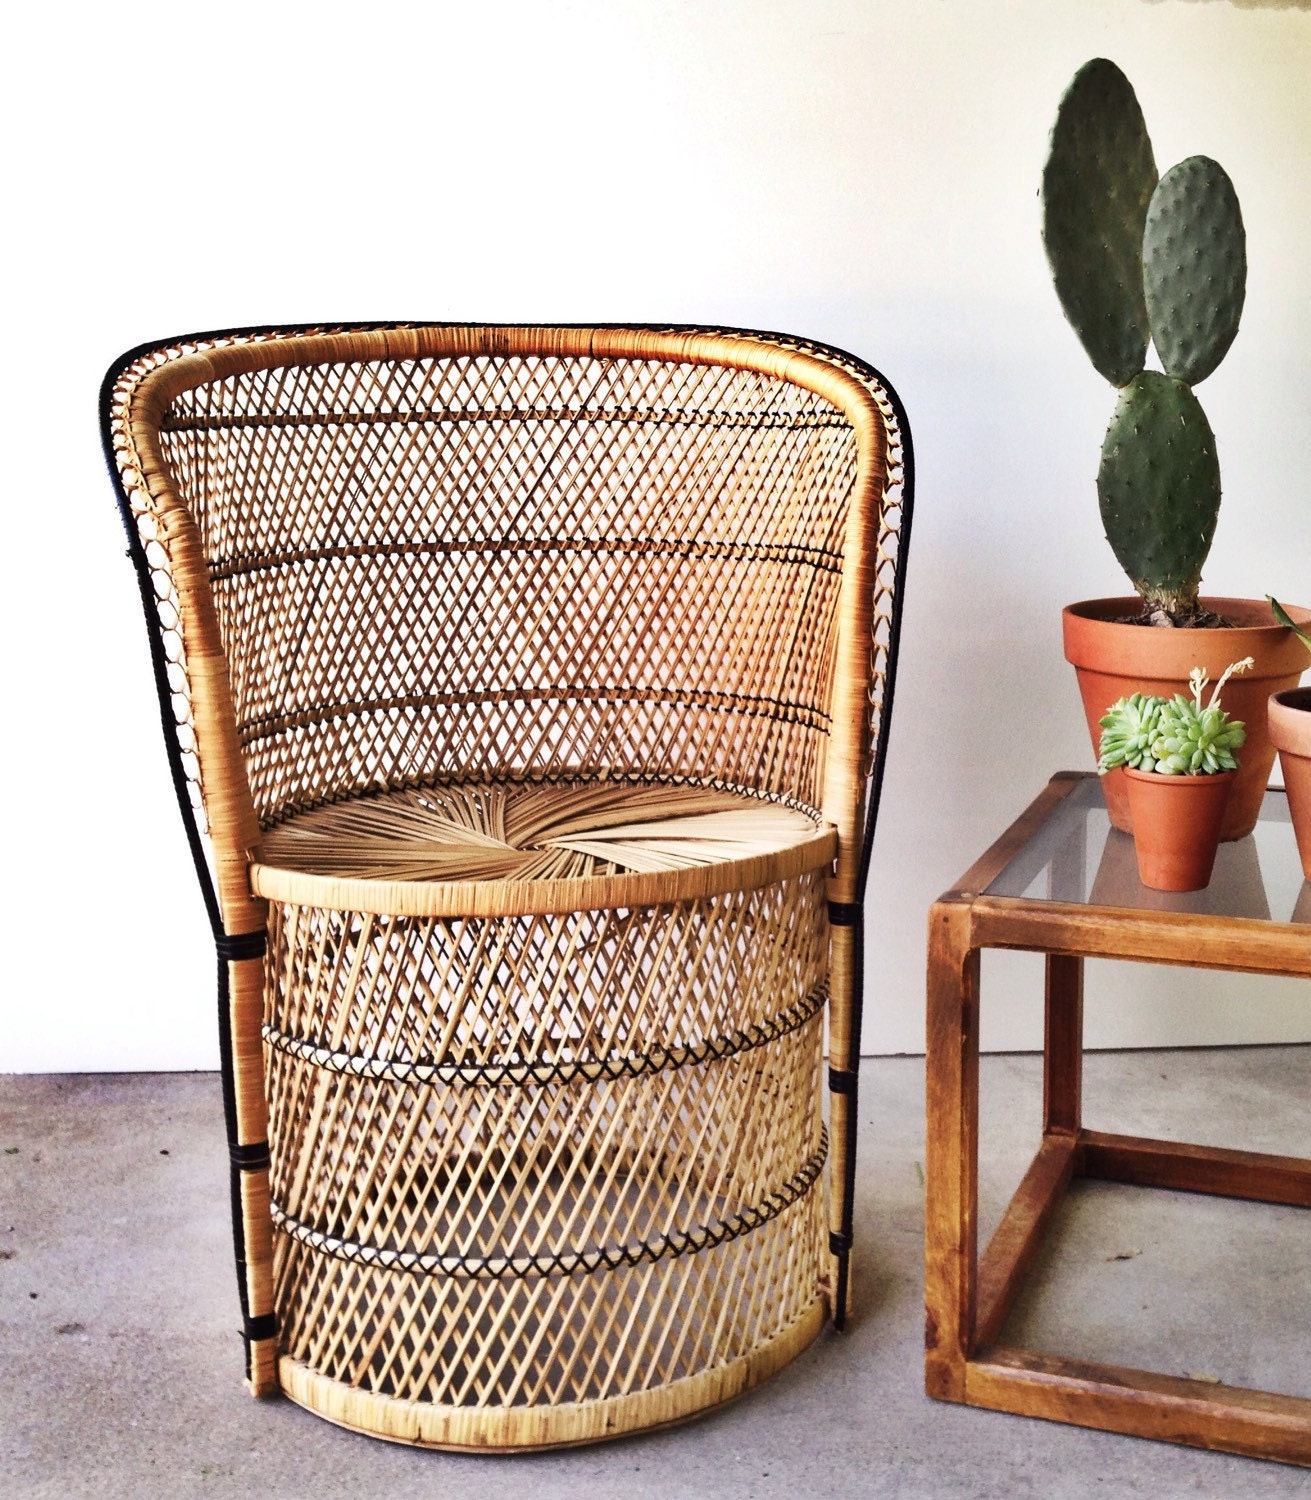 Etsy Vintage Bamboo Furniture: Vintage Wicker Chair Boho Seating Peacock Pedestal